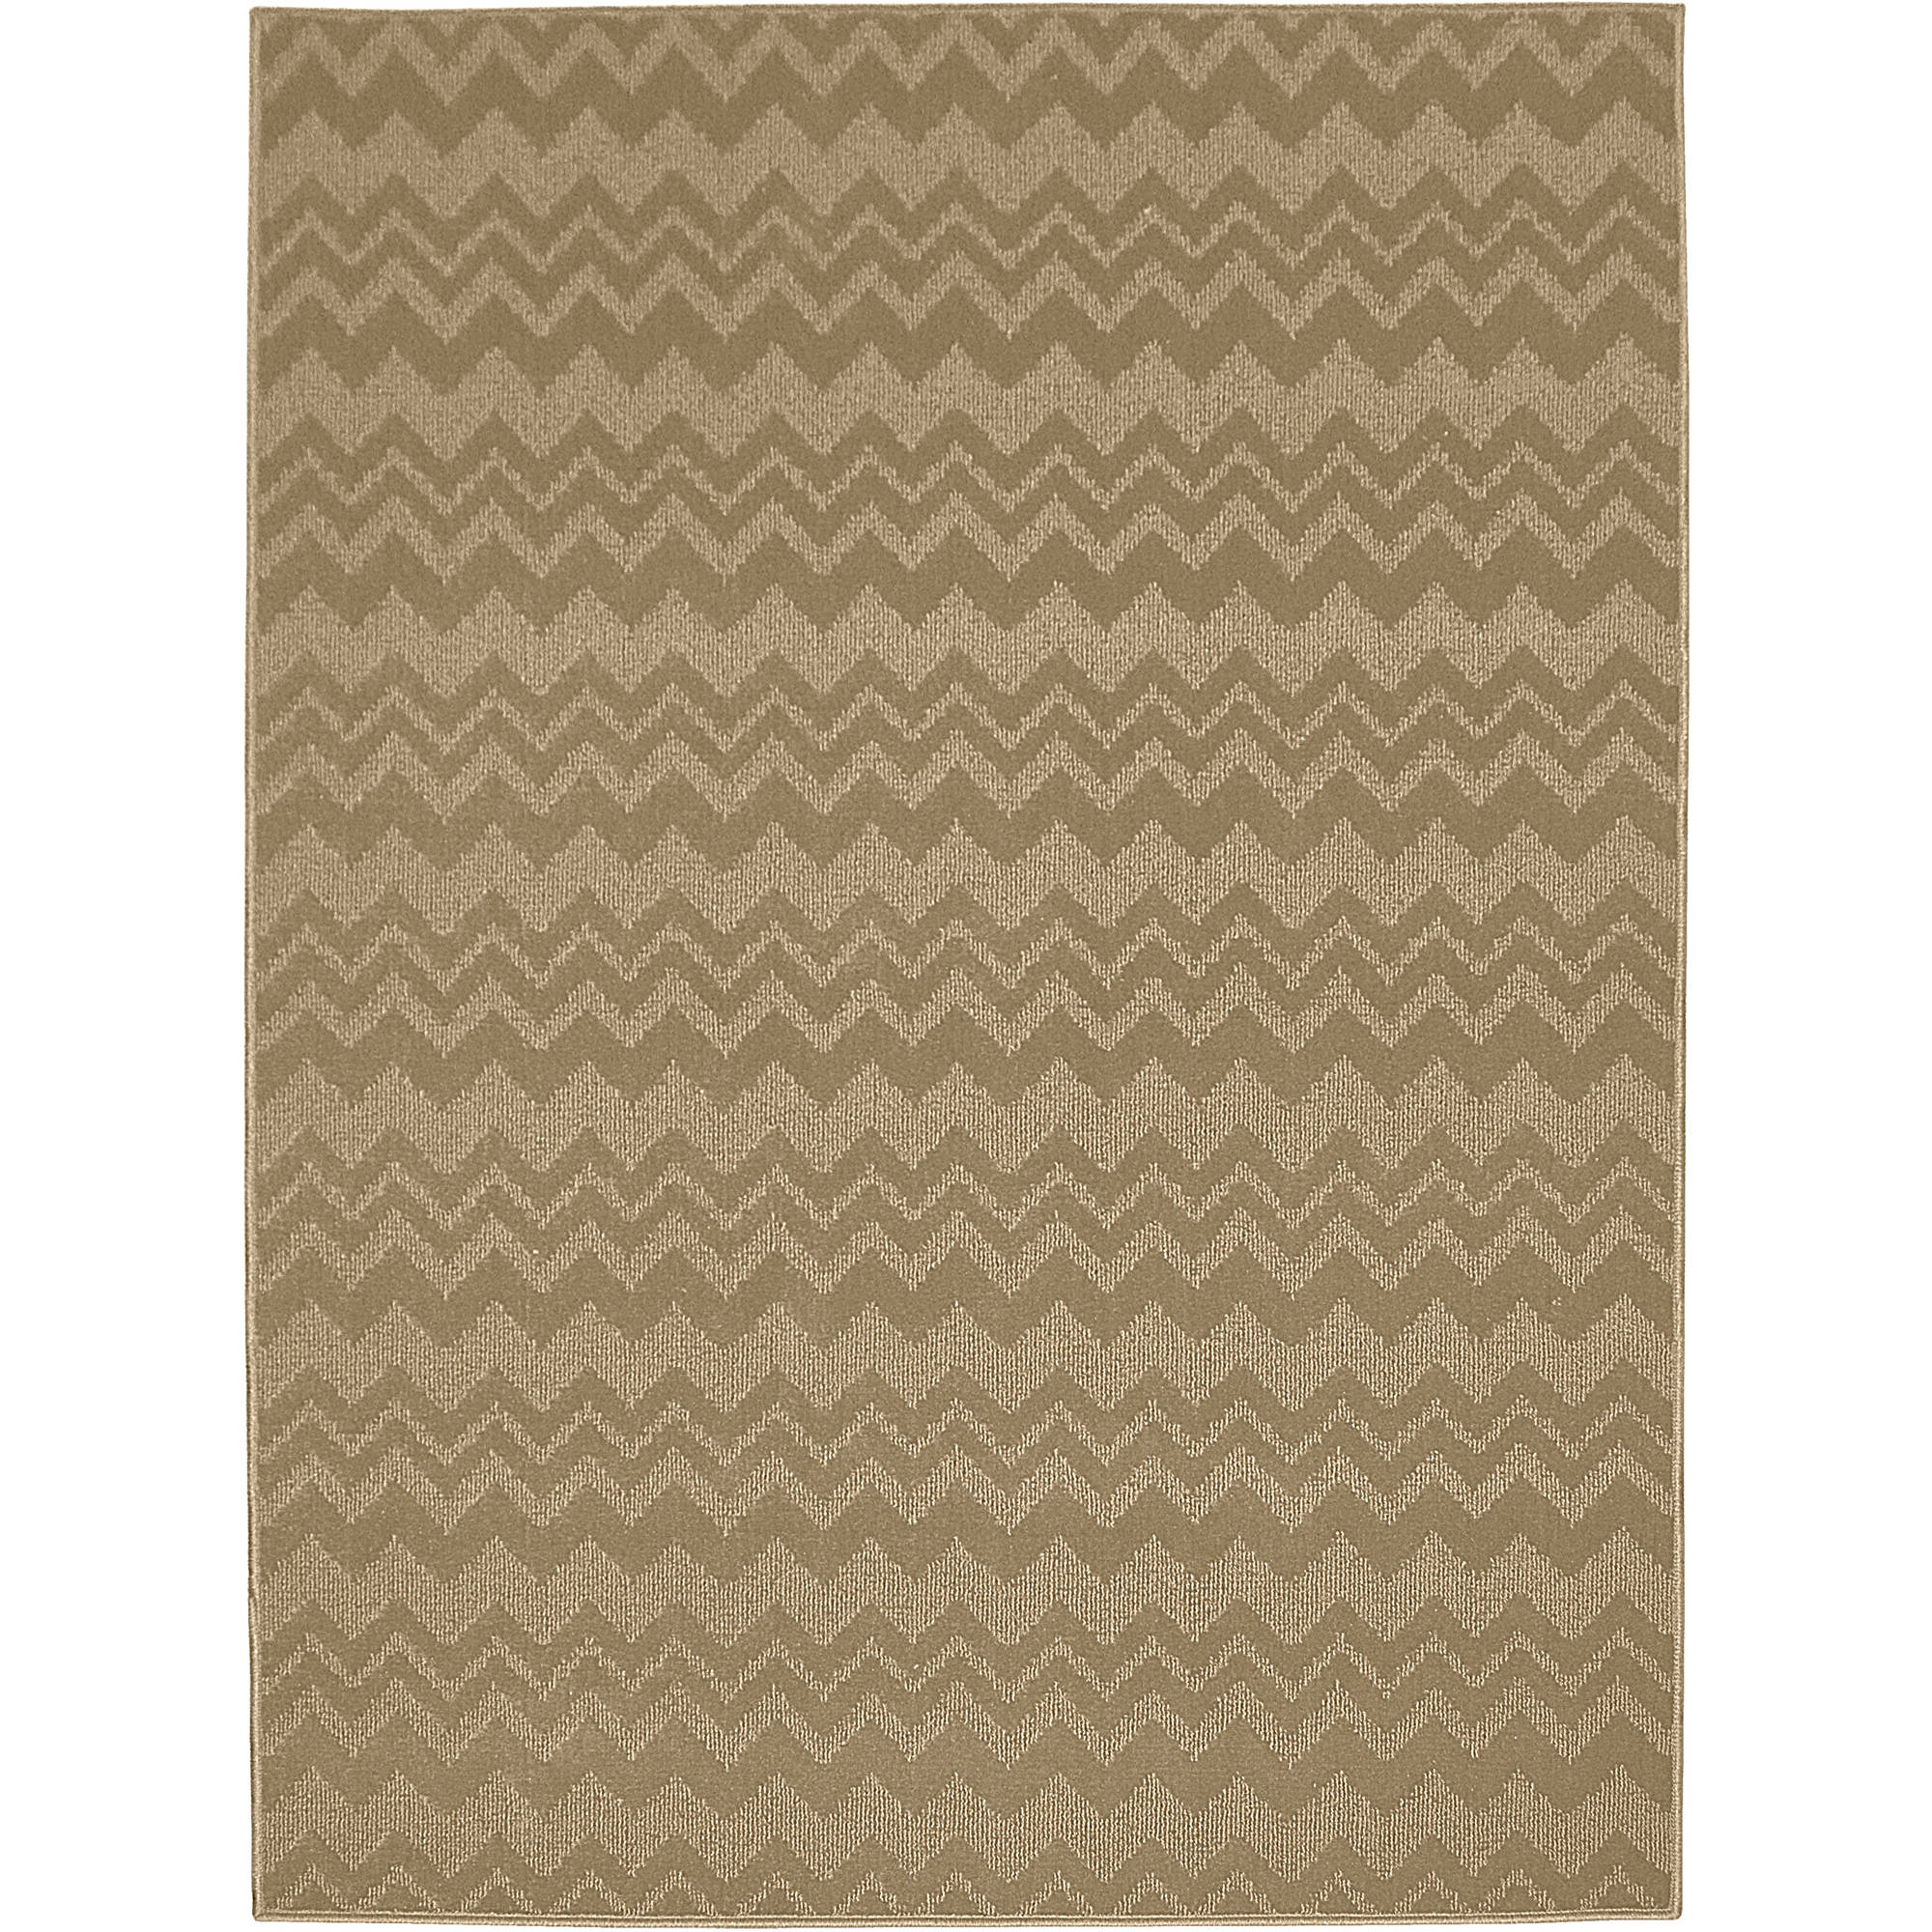 Garland Zig-Zag Patterned Woven Olefin Area Rug